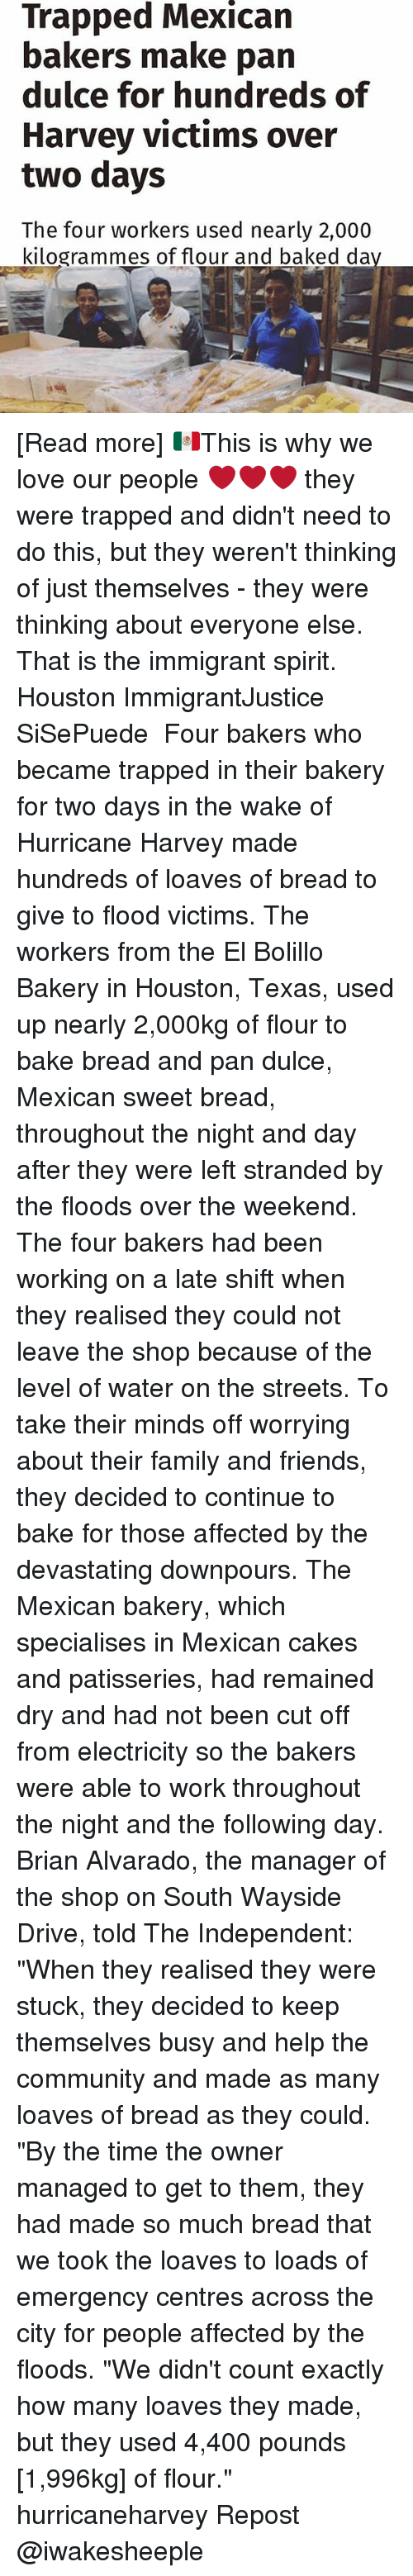 """houston texas: Trapped Mexican  bakers make pan  dulce for hundreds of  Harvey victims over  two days  The four workers used nearly 2,000  kilogrammes of flour and baked da [Read more] 🇲🇽This is why we love our people ❤❤❤ they were trapped and didn't need to do this, but they weren't thinking of just themselves - they were thinking about everyone else. That is the immigrant spirit. Houston ImmigrantJustice SiSePuede ・・・ Four bakers who became trapped in their bakery for two days in the wake of Hurricane Harvey made hundreds of loaves of bread to give to flood victims. The workers from the El Bolillo Bakery in Houston, Texas, used up nearly 2,000kg of flour to bake bread and pan dulce, Mexican sweet bread, throughout the night and day after they were left stranded by the floods over the weekend. The four bakers had been working on a late shift when they realised they could not leave the shop because of the level of water on the streets. To take their minds off worrying about their family and friends, they decided to continue to bake for those affected by the devastating downpours. The Mexican bakery, which specialises in Mexican cakes and patisseries, had remained dry and had not been cut off from electricity so the bakers were able to work throughout the night and the following day. Brian Alvarado, the manager of the shop on South Wayside Drive, told The Independent: """"When they realised they were stuck, they decided to keep themselves busy and help the community and made as many loaves of bread as they could. """"By the time the owner managed to get to them, they had made so much bread that we took the loaves to loads of emergency centres across the city for people affected by the floods. """"We didn't count exactly how many loaves they made, but they used 4,400 pounds [1,996kg] of flour."""" hurricaneharvey Repost @iwakesheeple"""